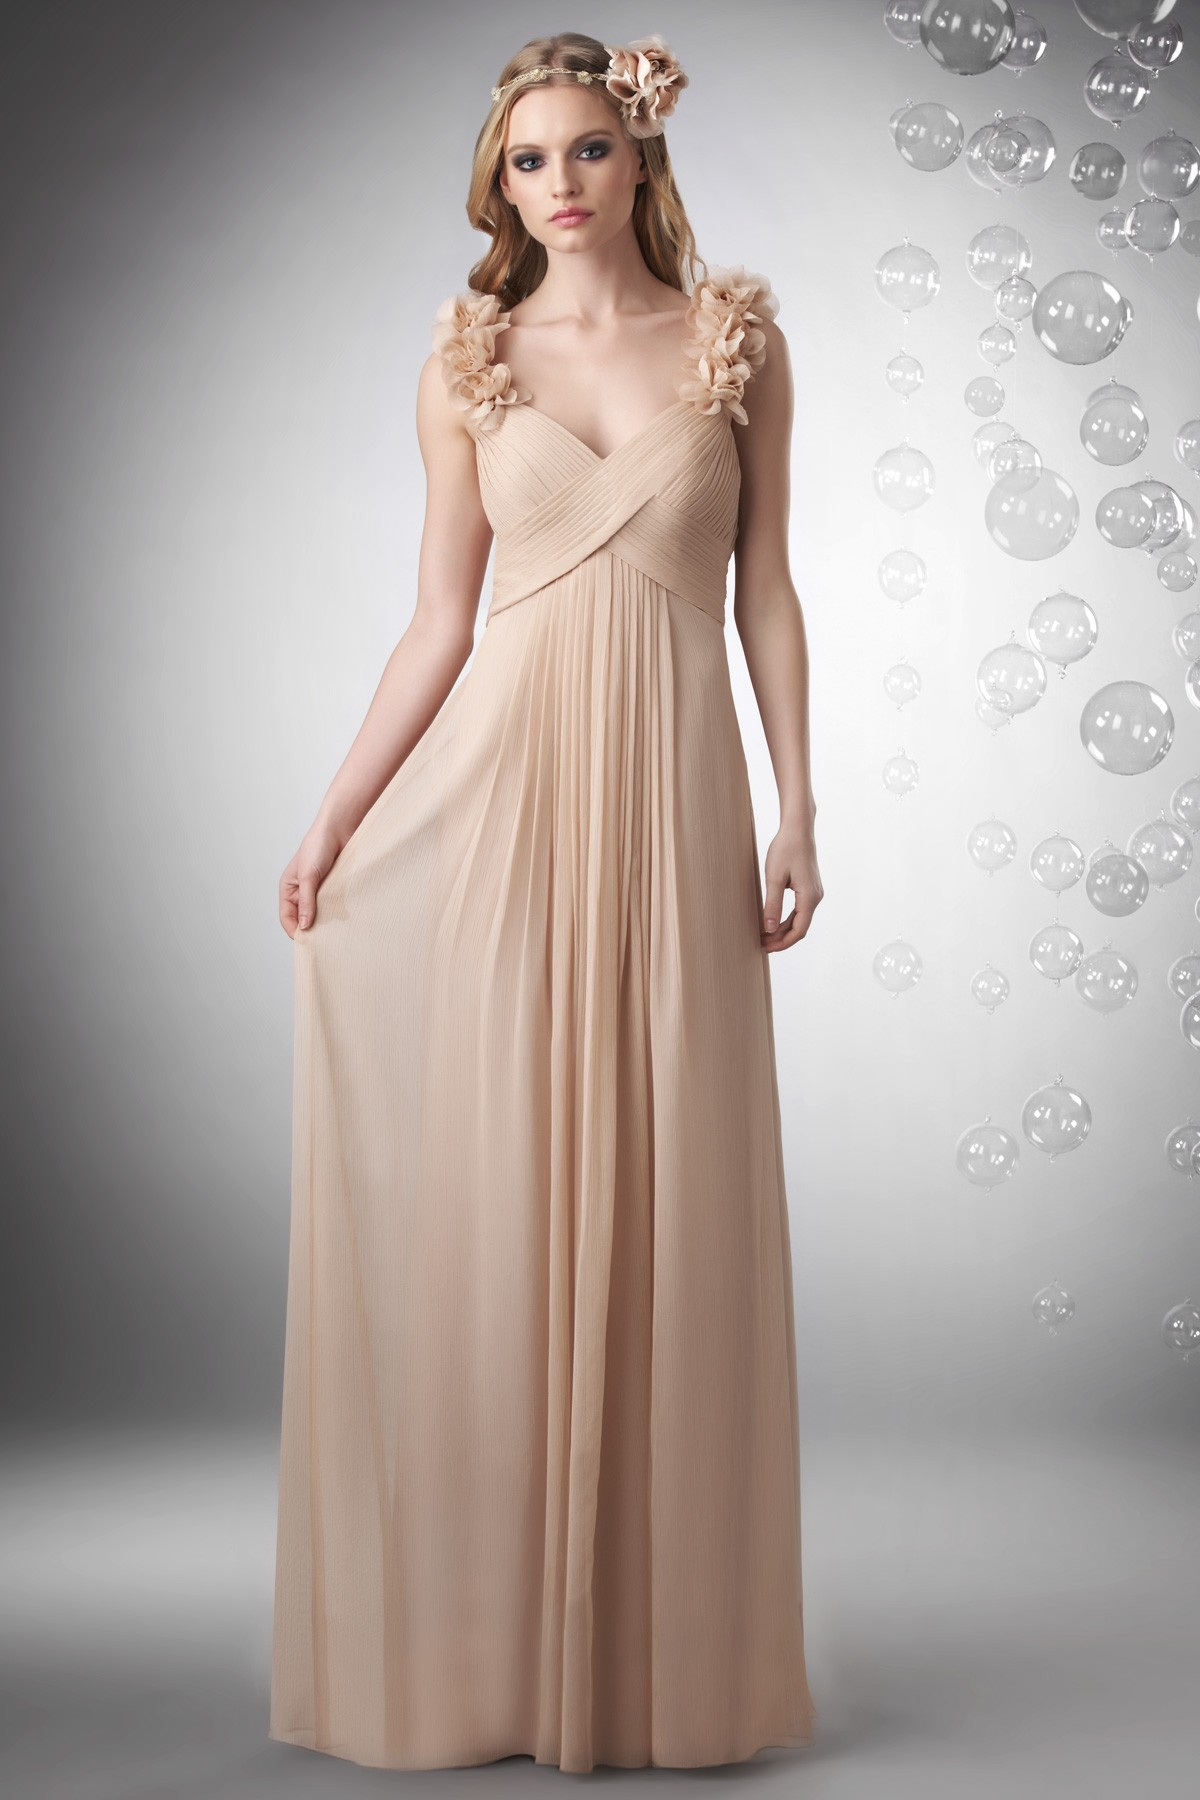 Buy low price, high quality chiffon dress with worldwide shipping on nazhatie-skachat.gq